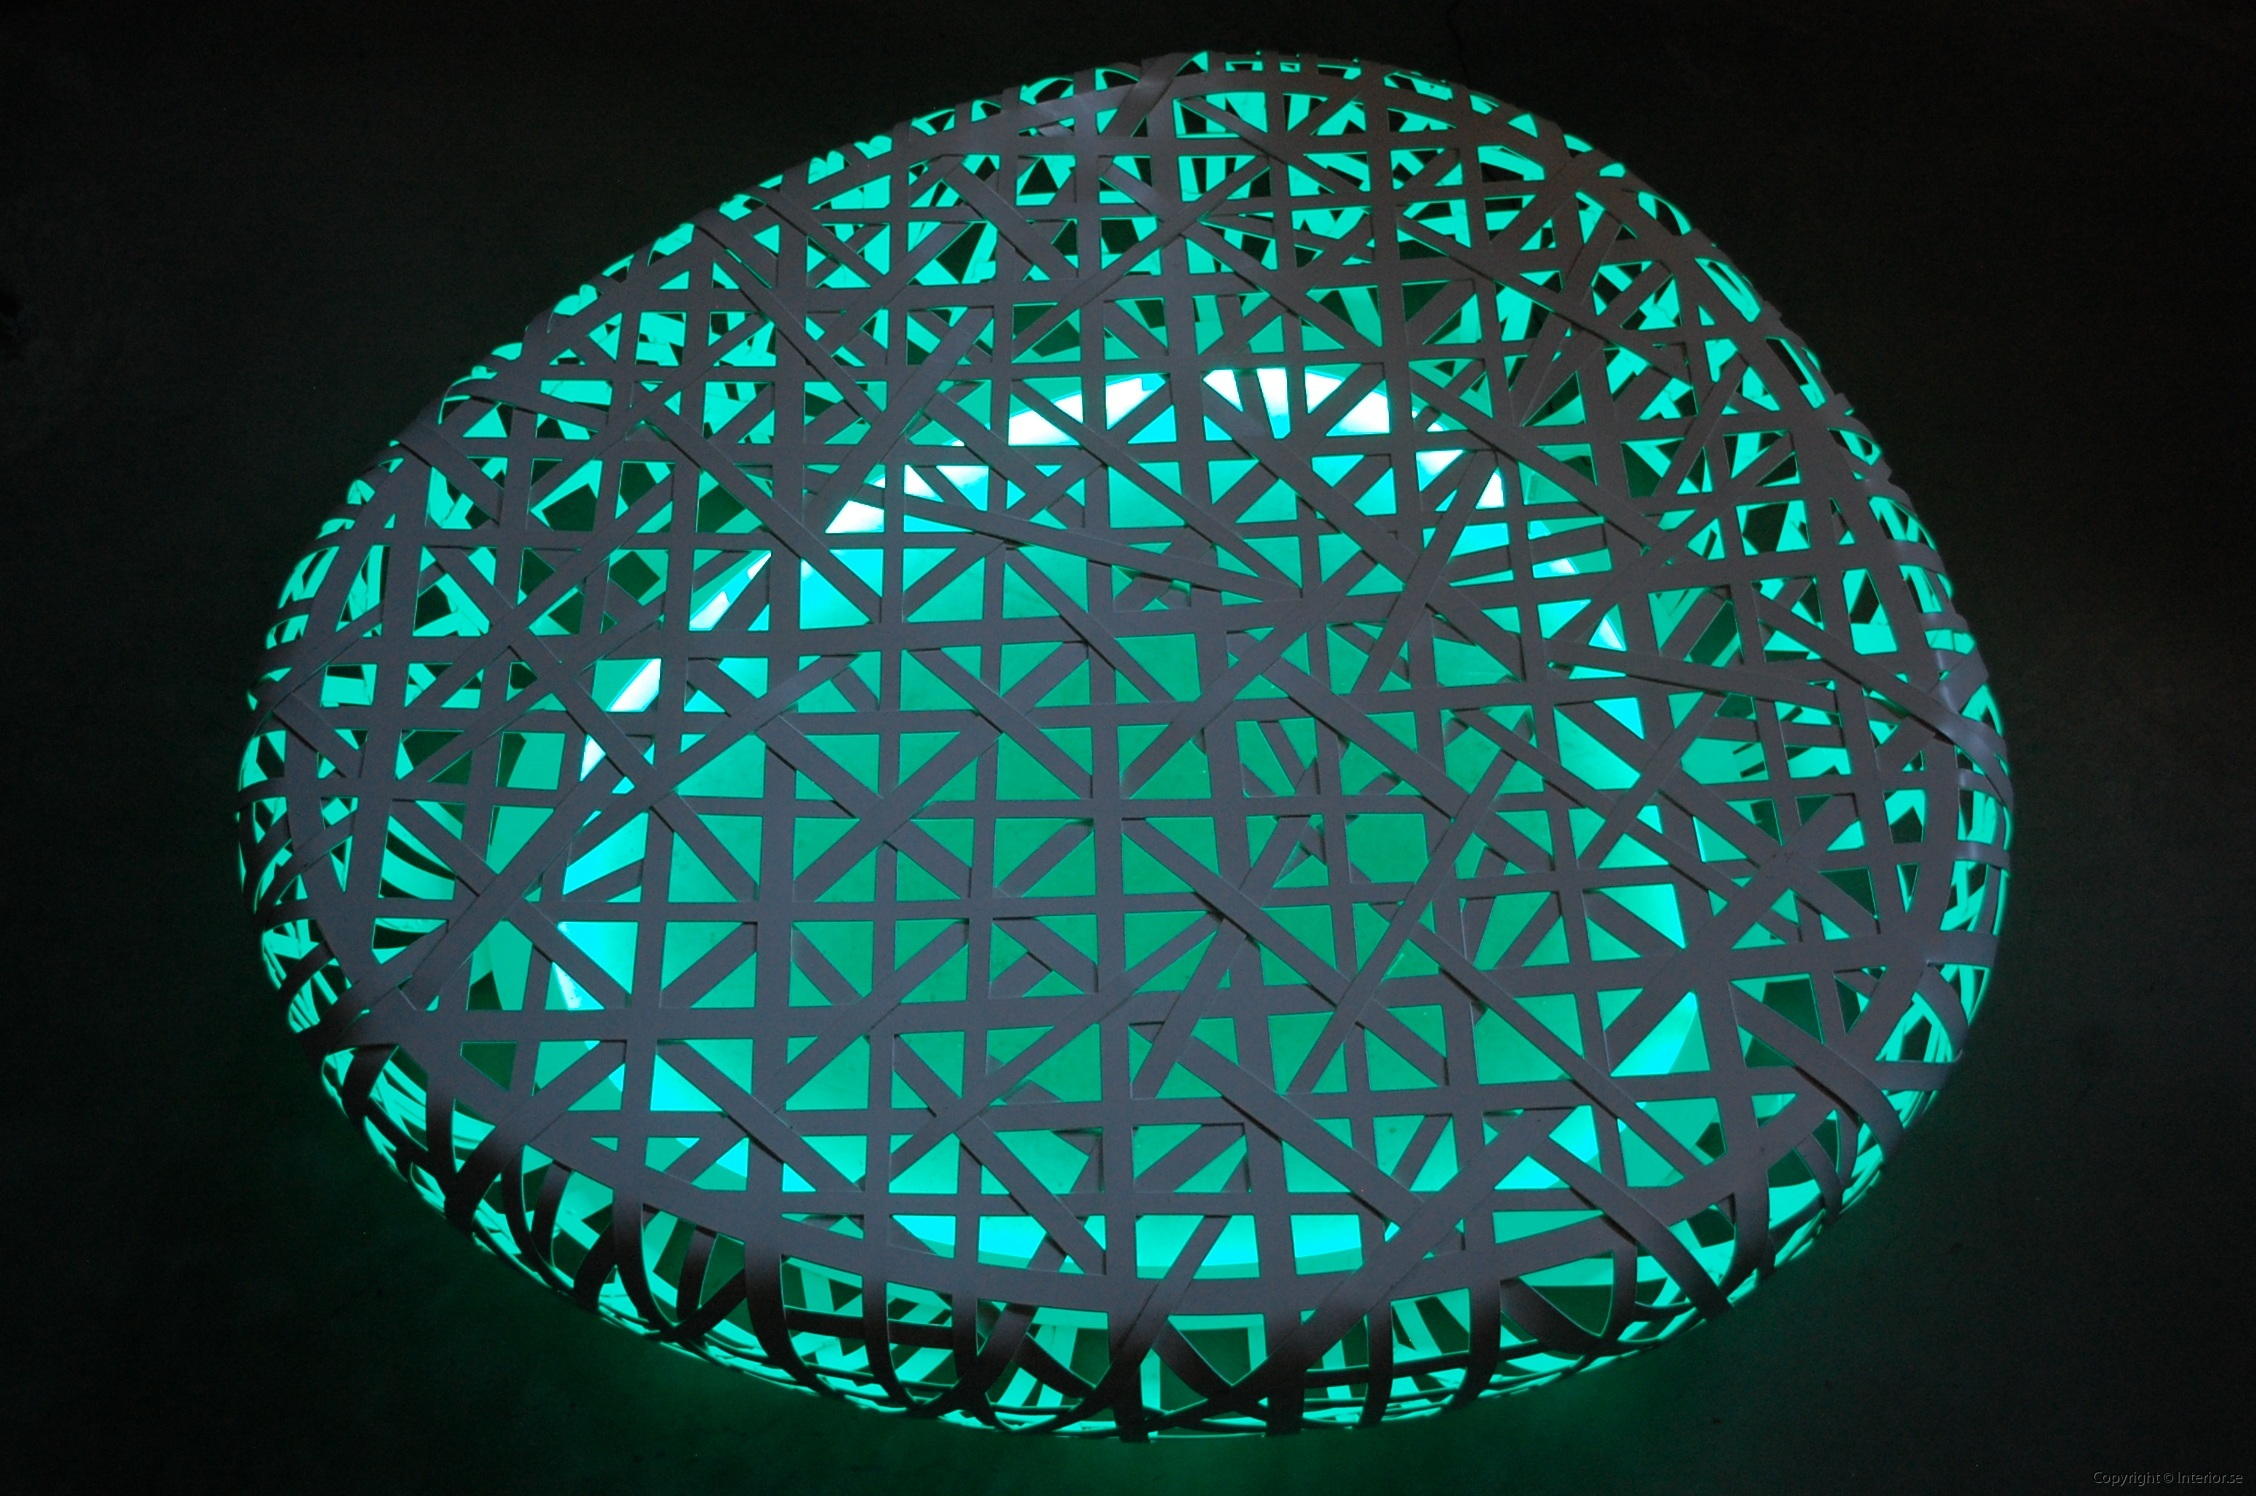 Hyra möbler stockholm led bird s nest beijing china kina stadium furniture sofa event möbler (21)